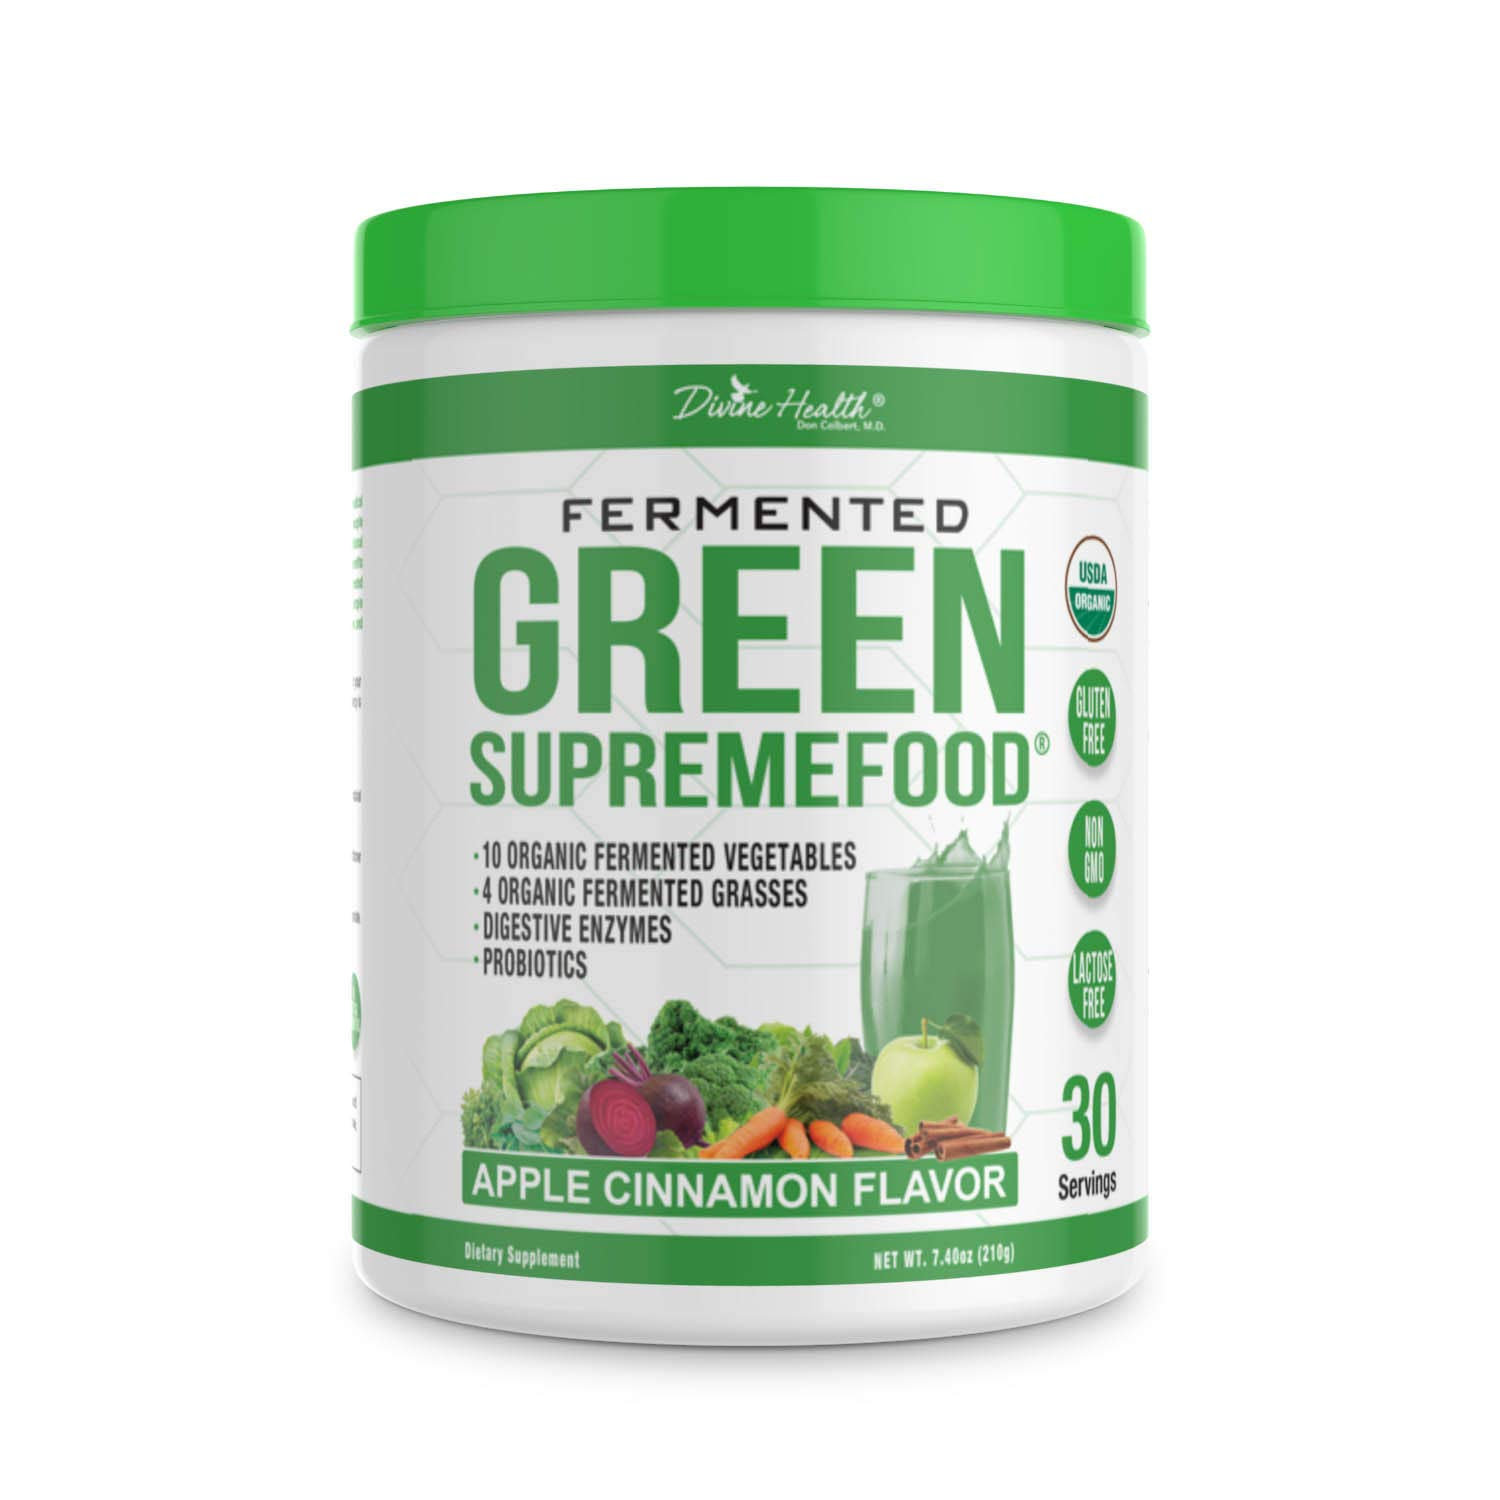 Divine Health Fermented Green Supremefood®